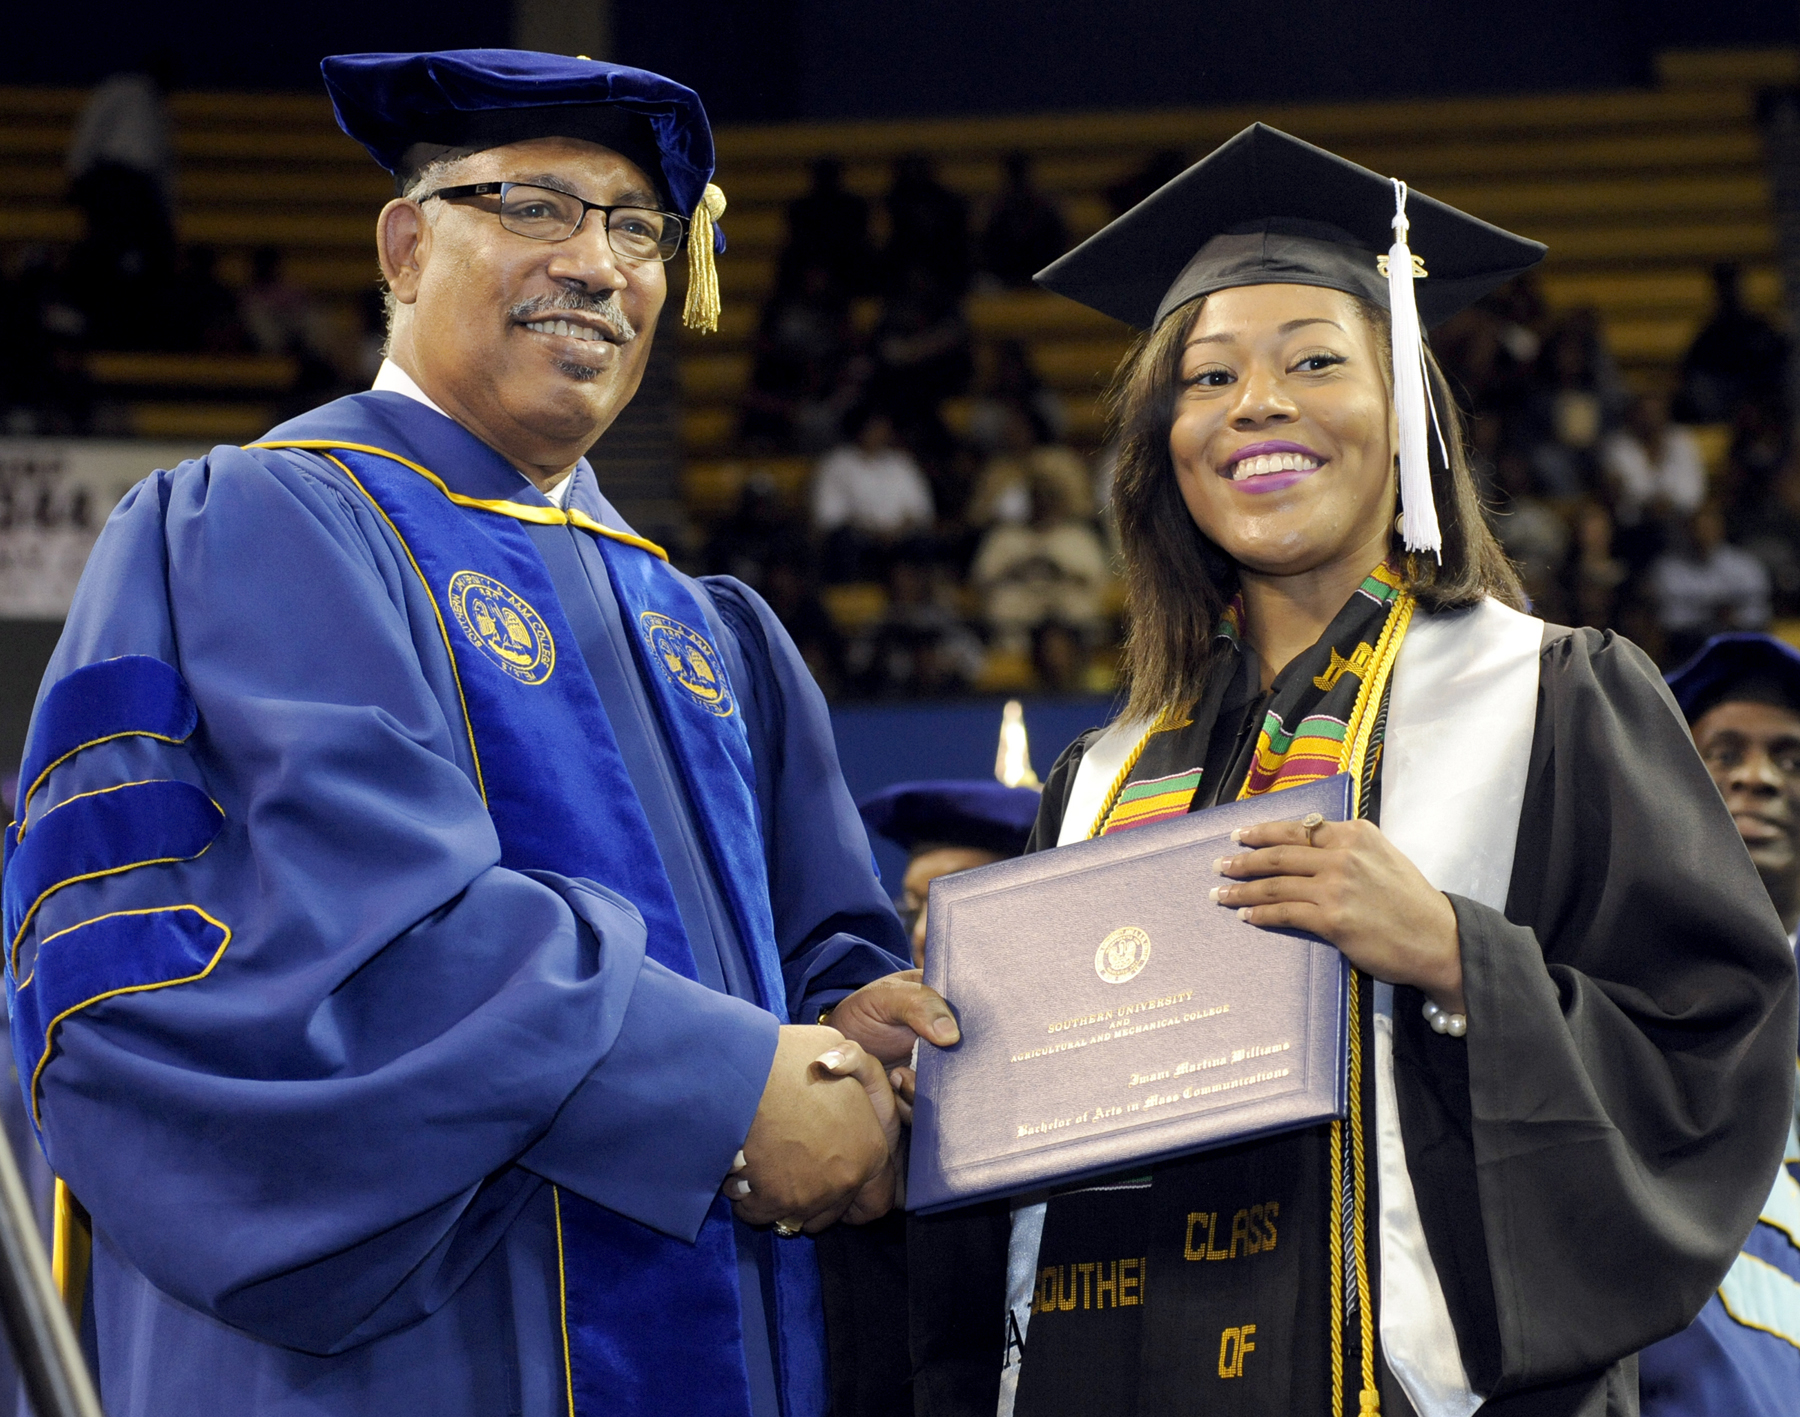 Southern University System President-Chancellor congratulates West Palm Beach, Florida native, Imani Martina Williams, who had the highest grade point average of the undergraduate students who received degrees during fall commencement at Southern University Baton Rouge, Friday, December 11, 2015.